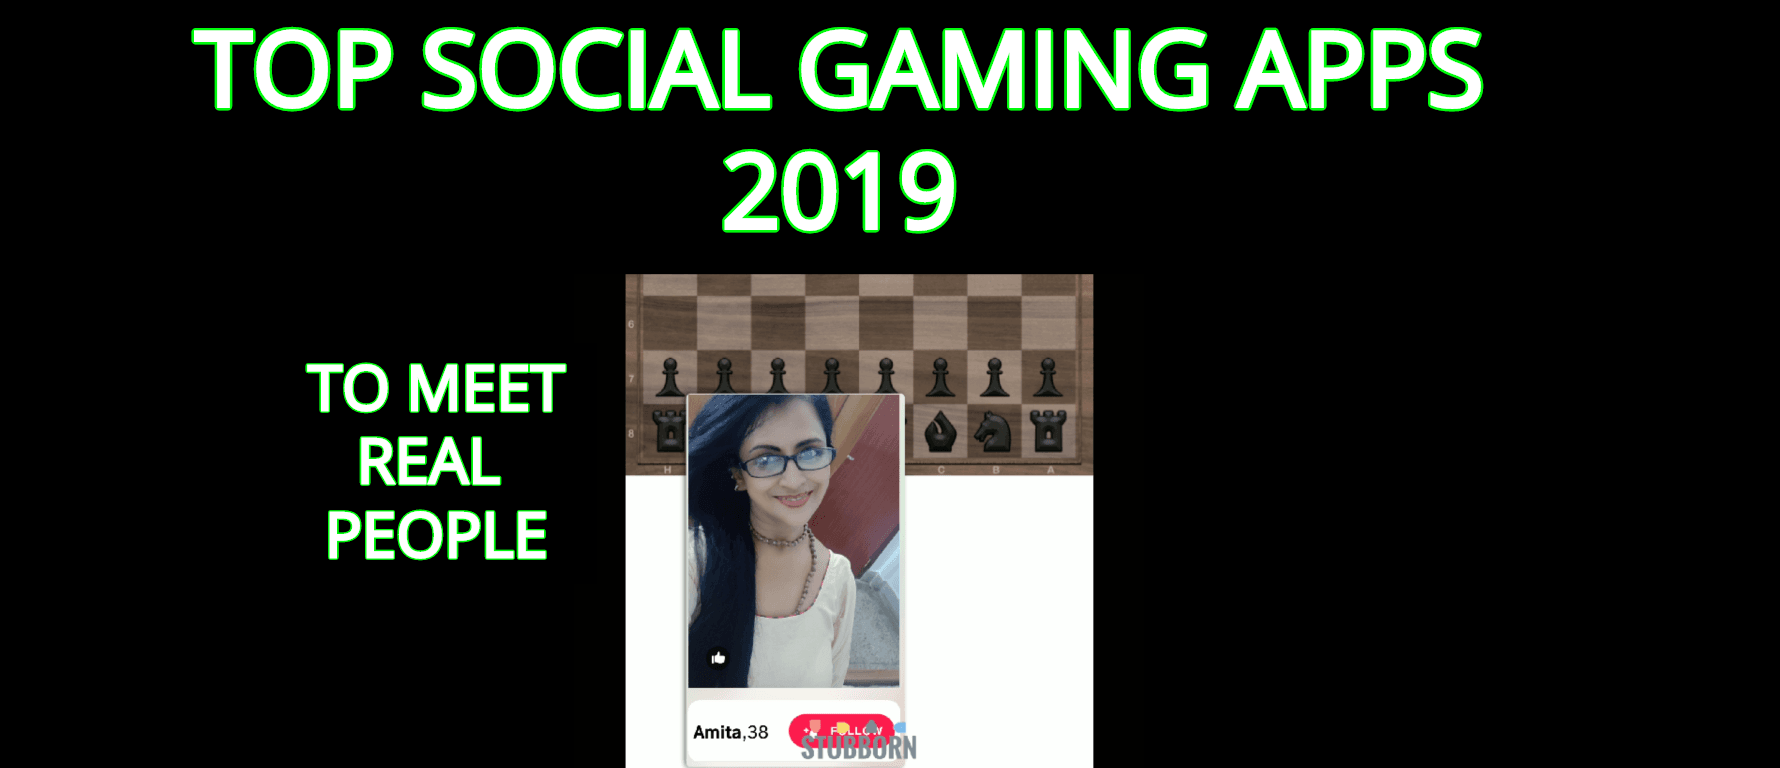 Top Social Gaming Apps 2019 Free Download